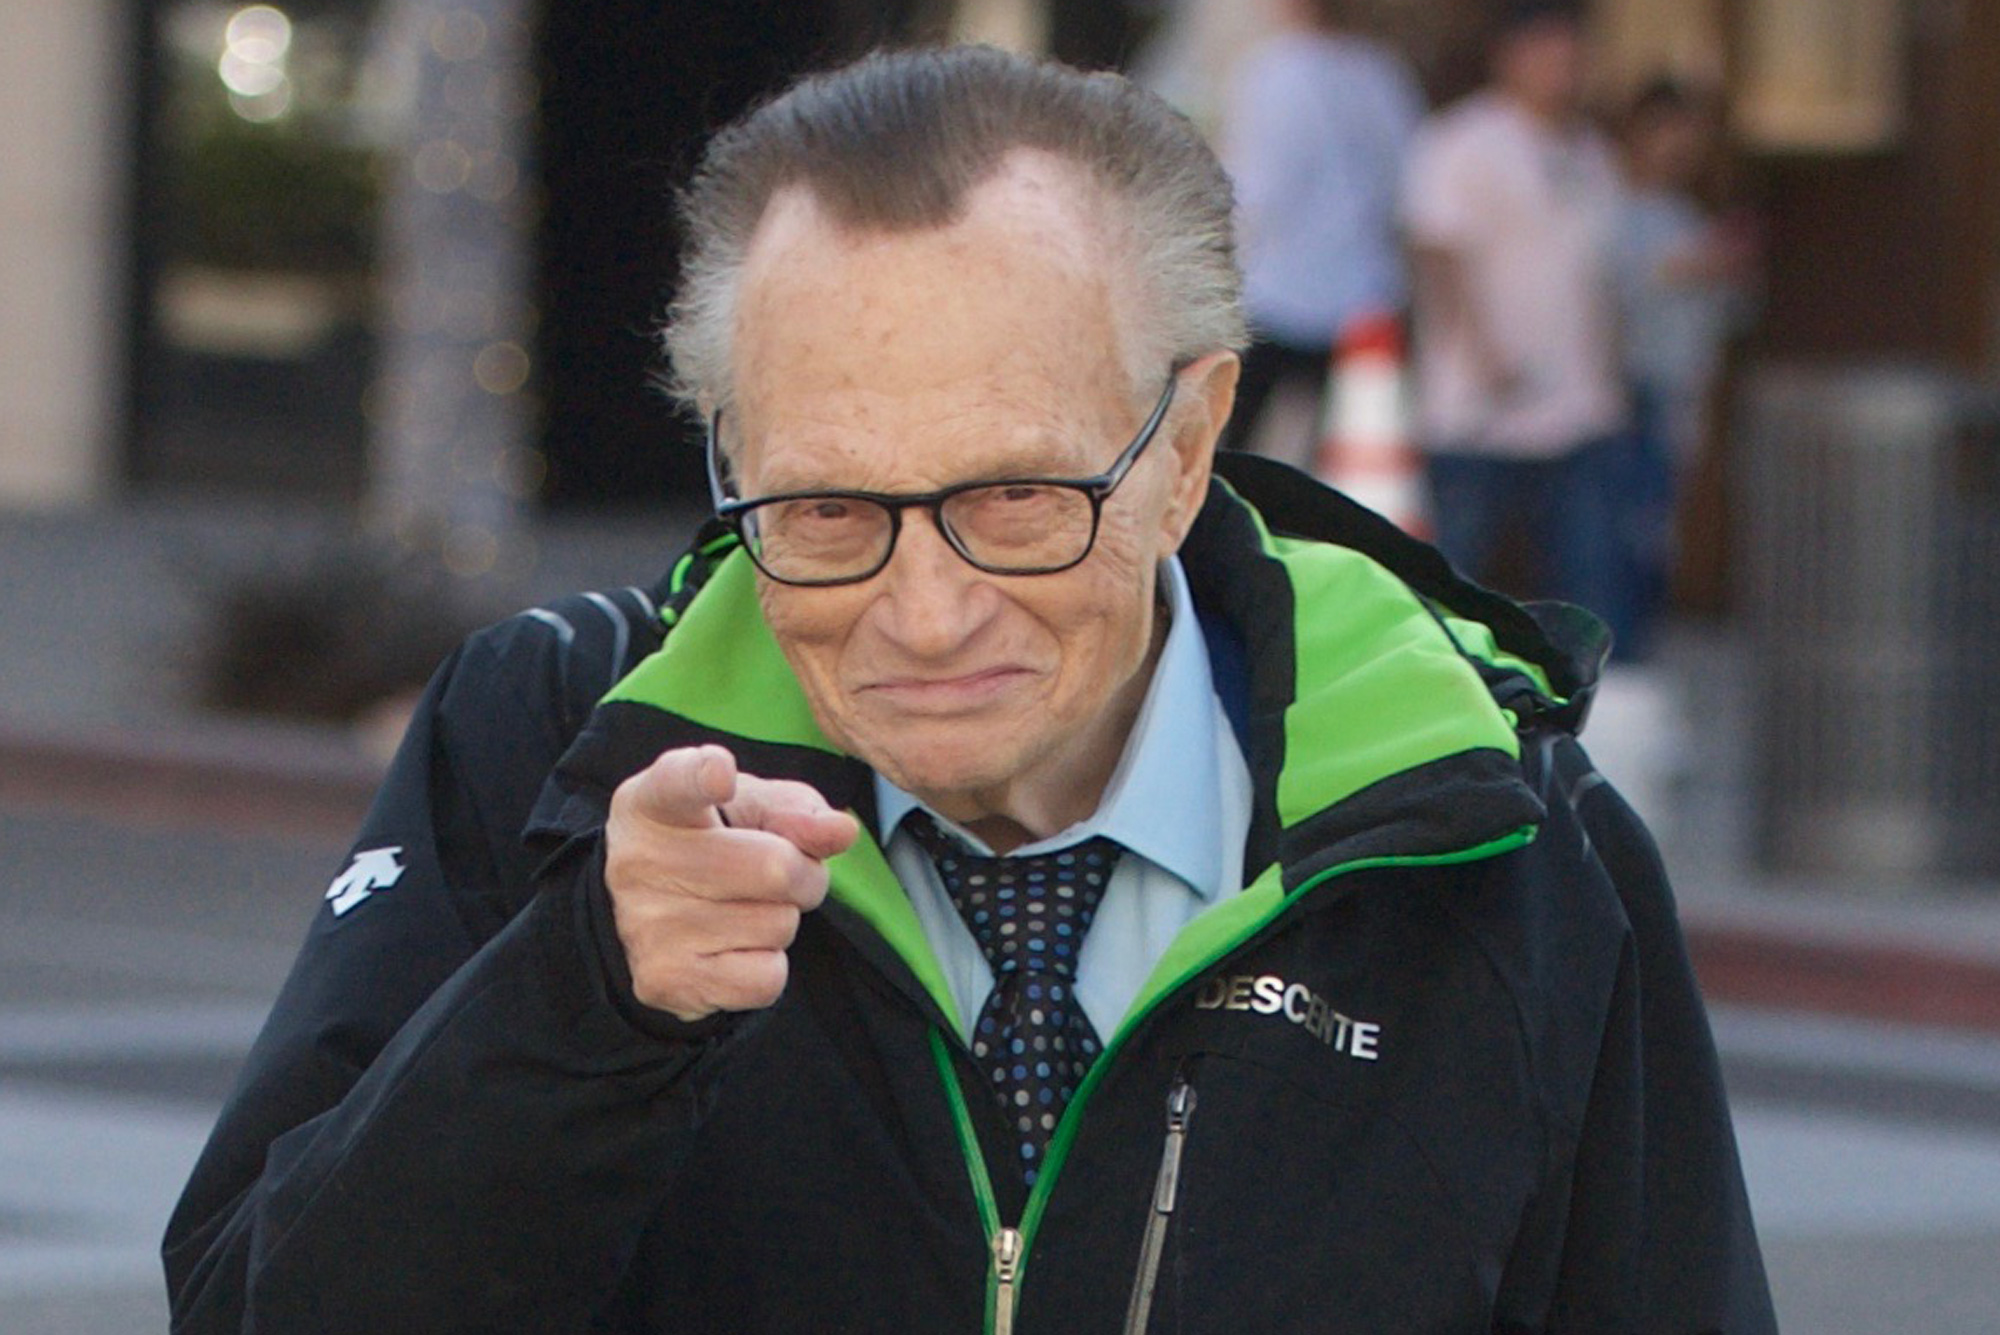 Larry King feeling better after spending 87th birthday in the hospital